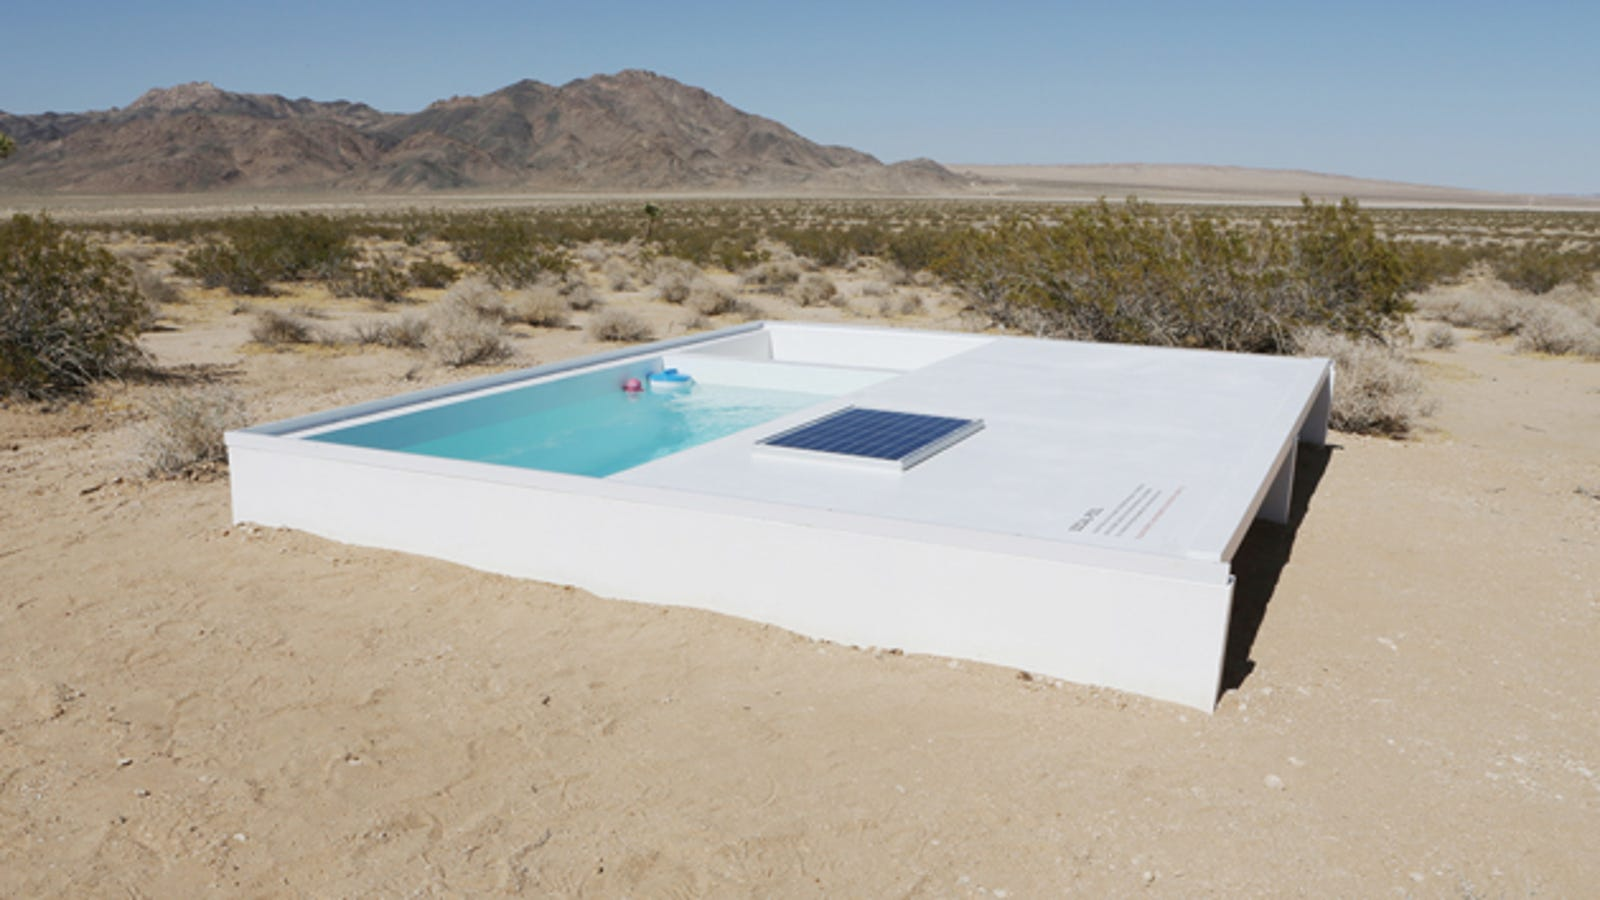 You Can Swim In a Secret Pool in the Mojave Desert, If You Can Find It